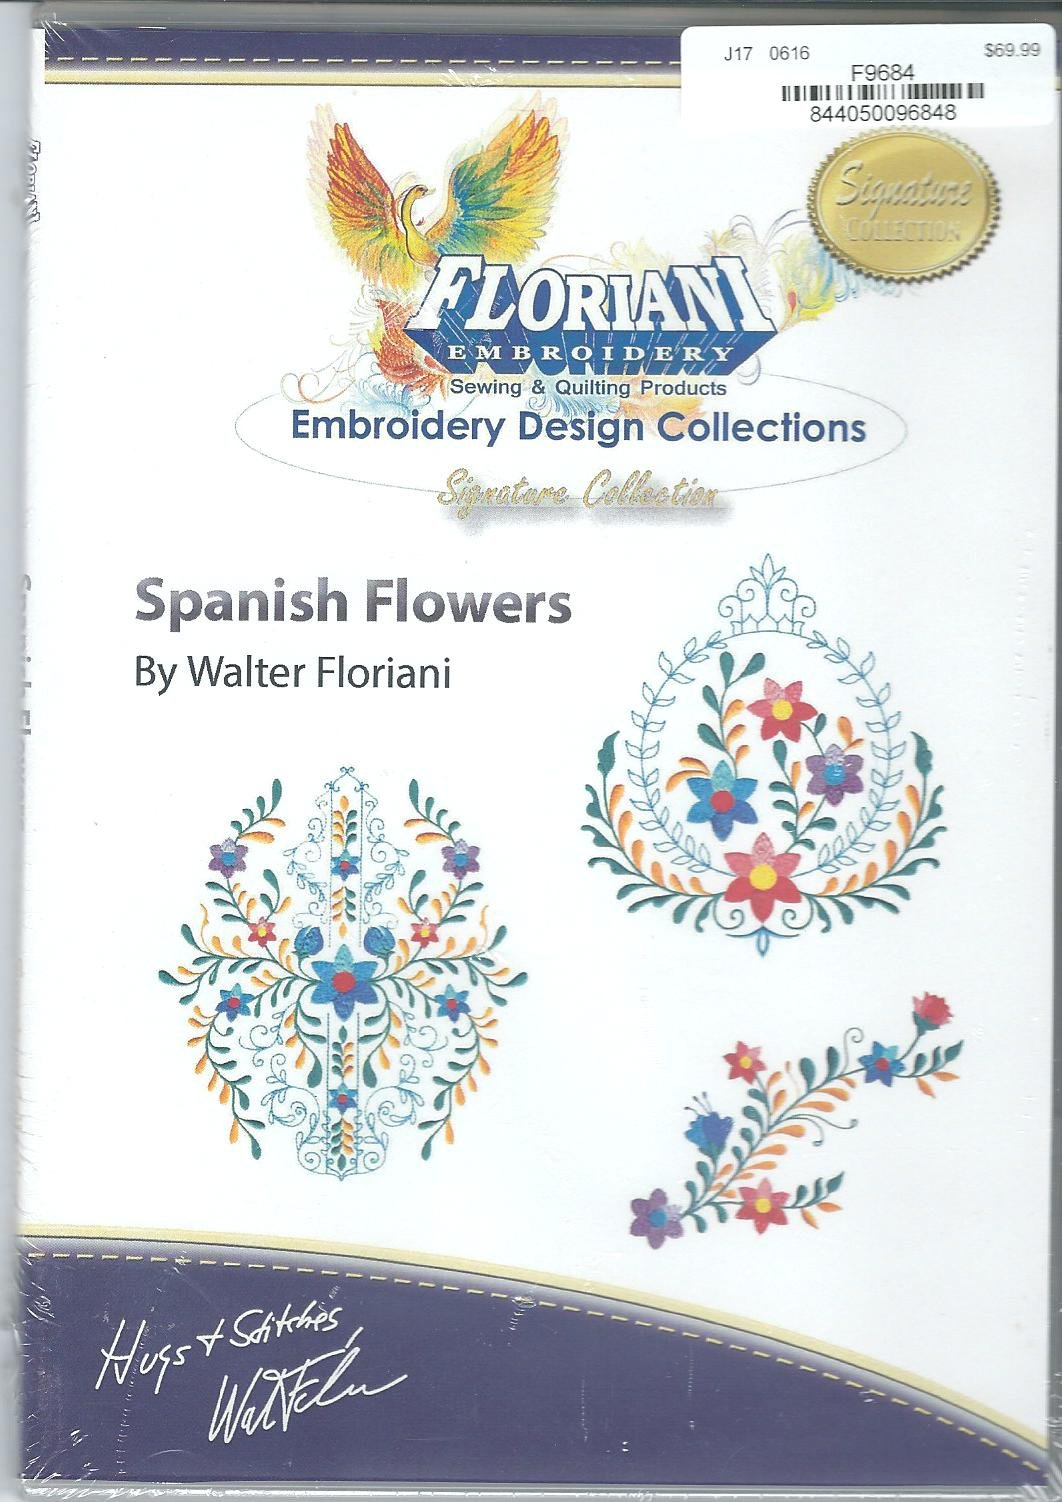 Floriani Embroidery Design Collection Spanish Flowers